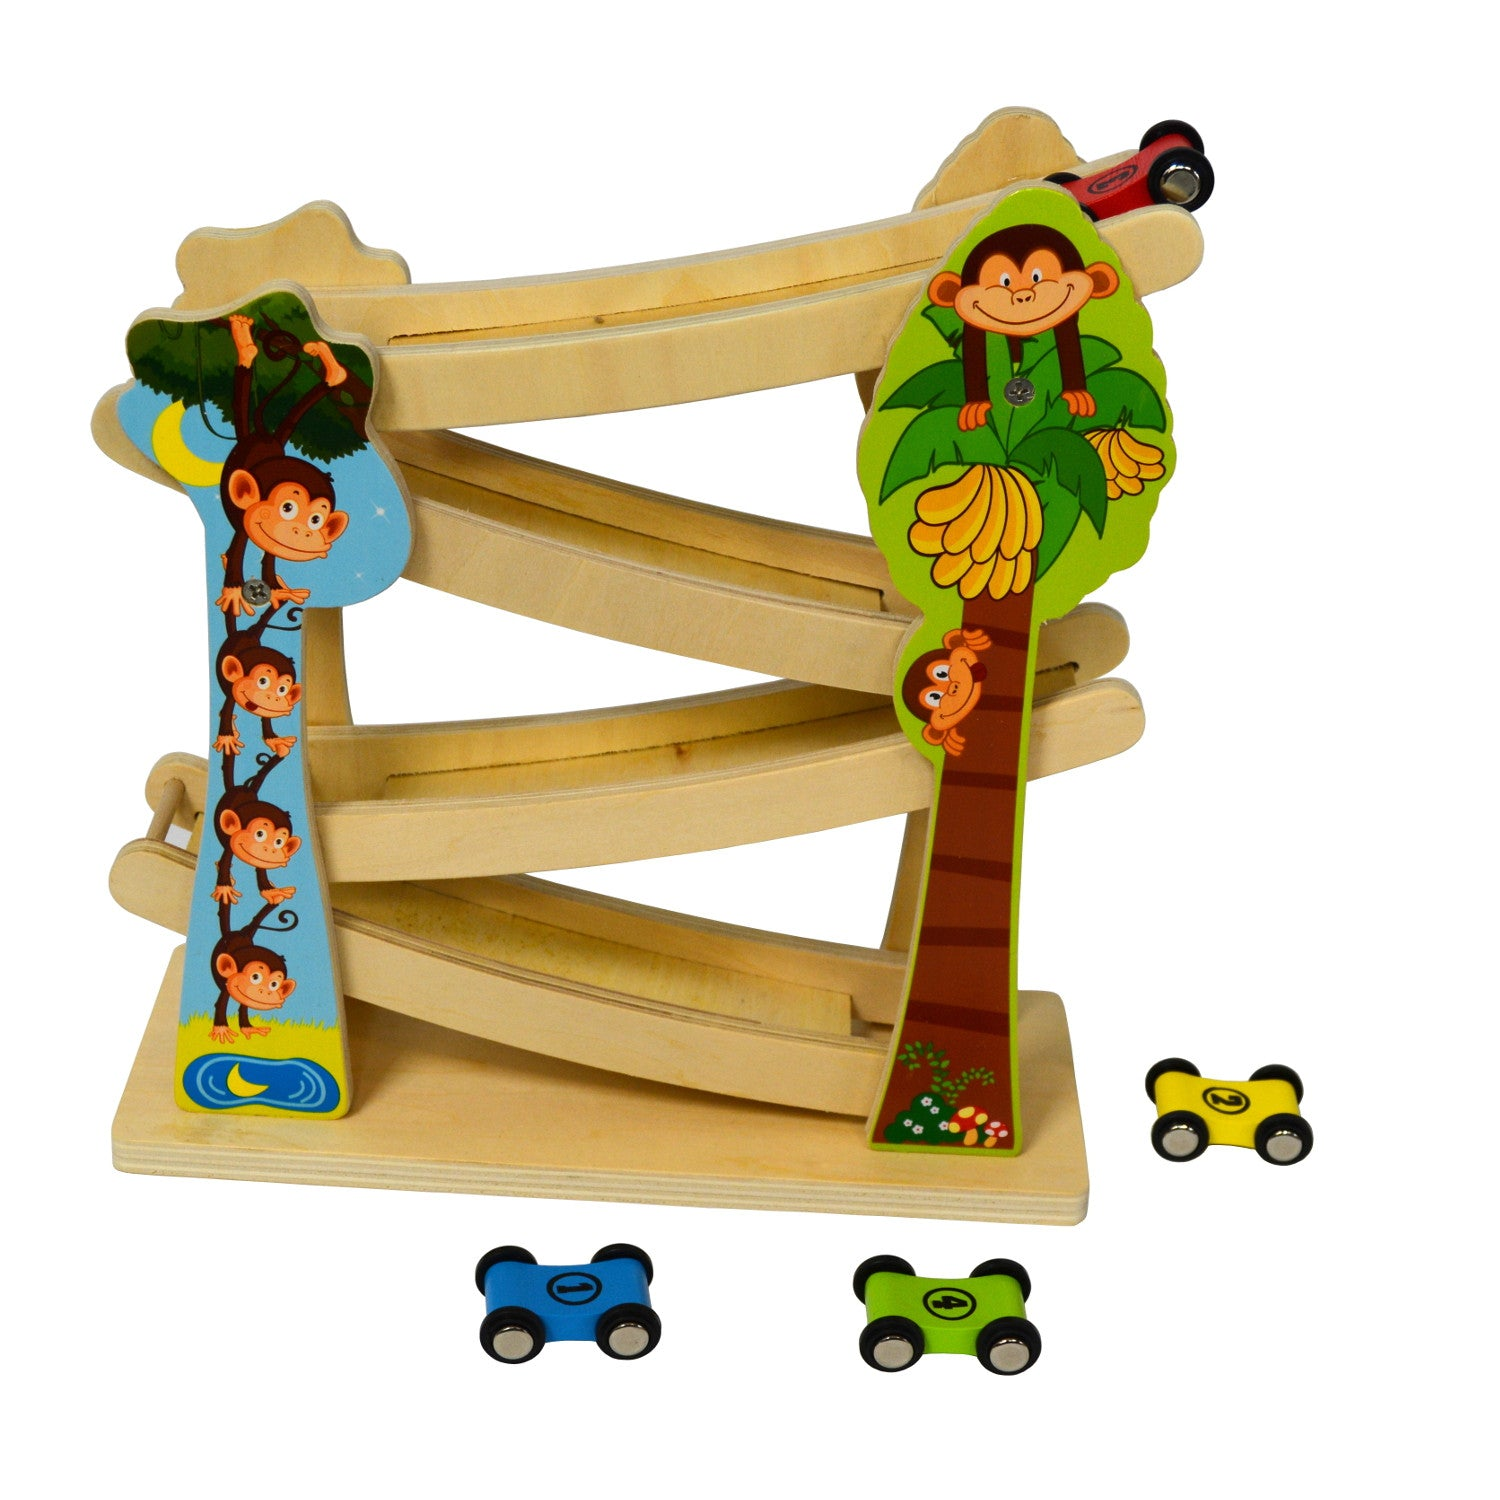 Toy Cars That Flip Over : Wooden toy zig zag loop miniature flip car racer on